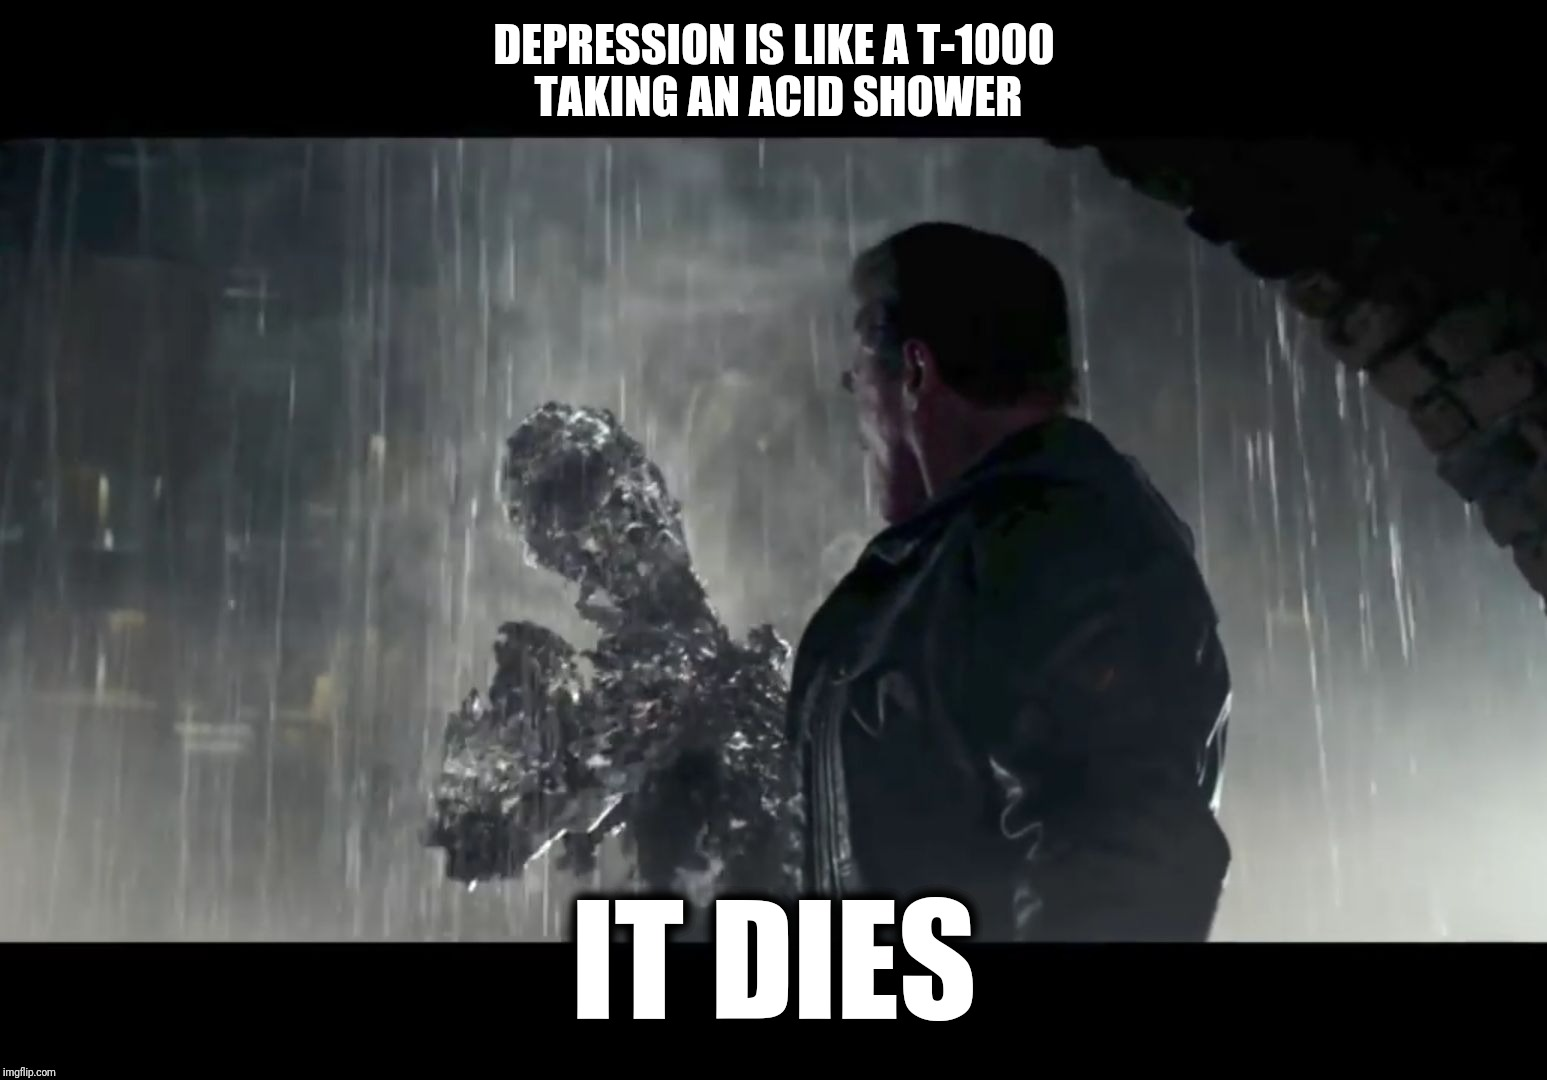 DEPRESSION IS LIKE A T-1000 TAKING AN ACID SHOWER IT DIES | image tagged in t-1000 acid shower | made w/ Imgflip meme maker